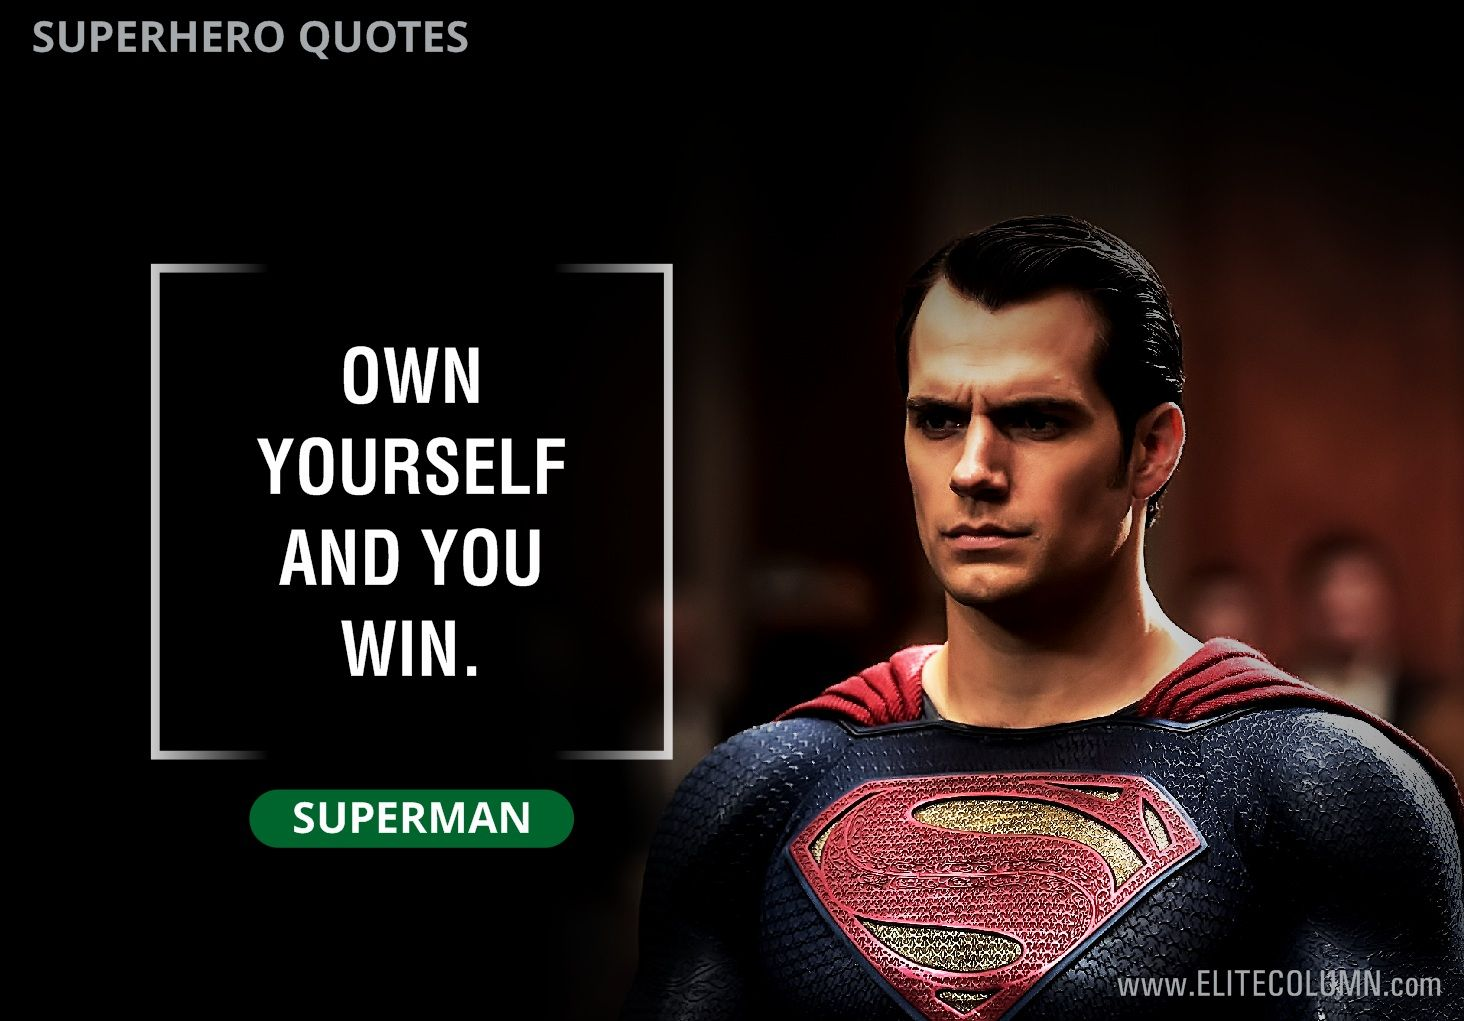 12 Superhero Quotes To Inspire You To Deal With Your Life